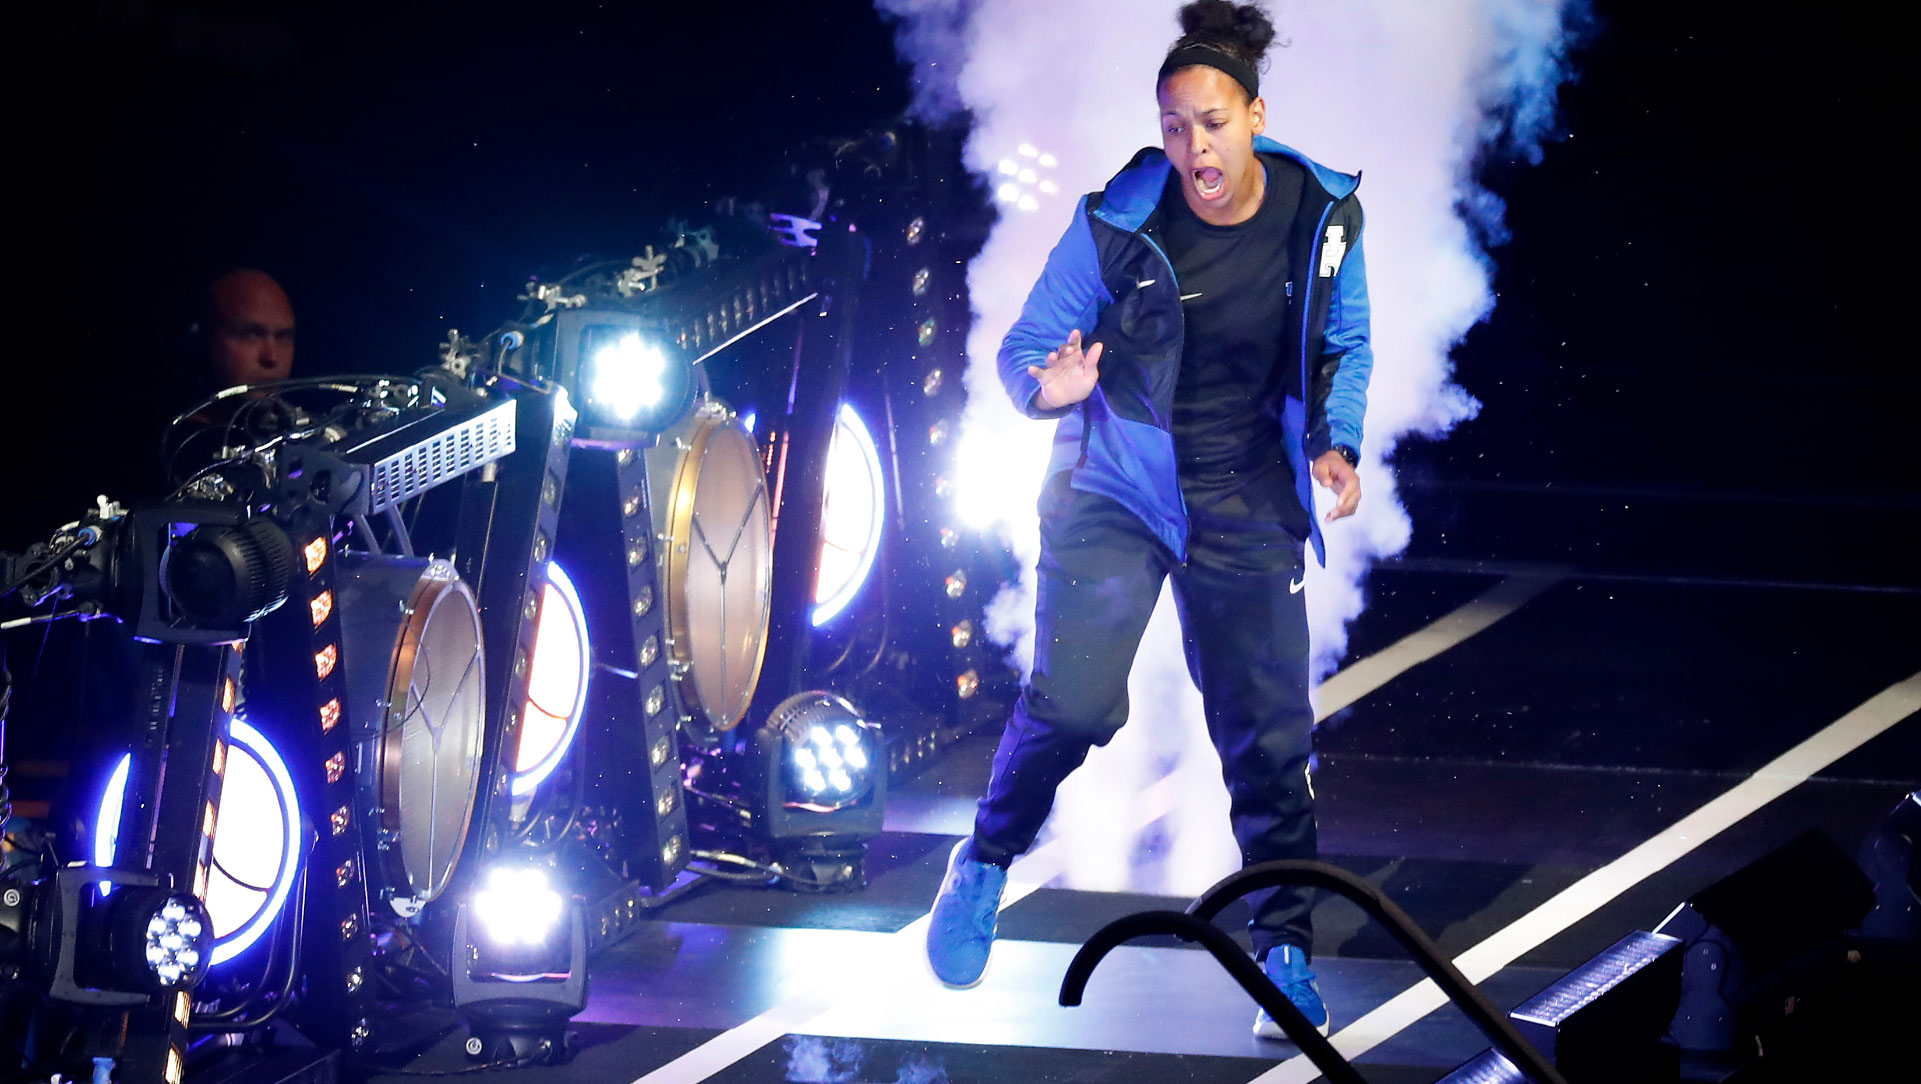 Amber, dressed in a black and blue sweatsuit, dances down a ramp of lights, clocks and fog machines at Big Blue Madness.